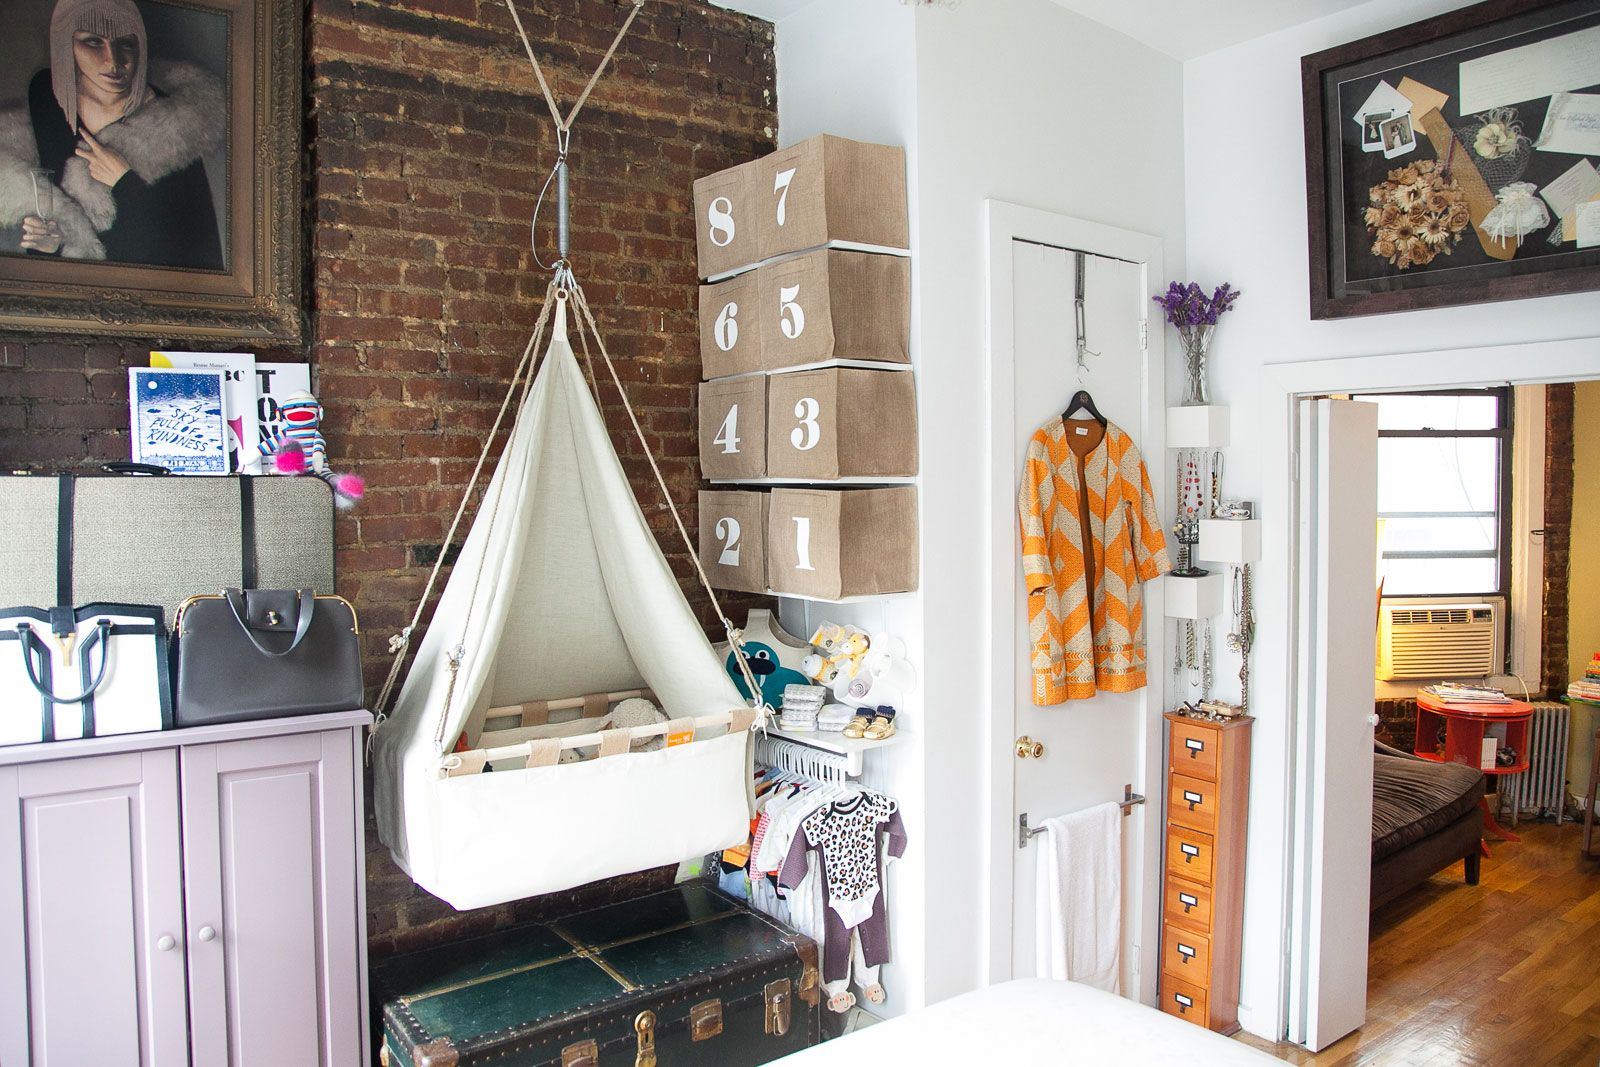 """How A NYC Couple Fit A Nursery Into A 400-Square-Foot Loft #refinery29  http://www.refinery29.com/baby-room#slide-5  Where did you find the hanging bassinet? How did you secure it to the ceiling? """"After much research and brainstorming, I knew there had to be a better way to save space and integrate this child into our life. To me, it just made sense to create something that was more of a built-in baby space. I found the Dutch company Kindekeklein and knew this had to be part of my design…"""